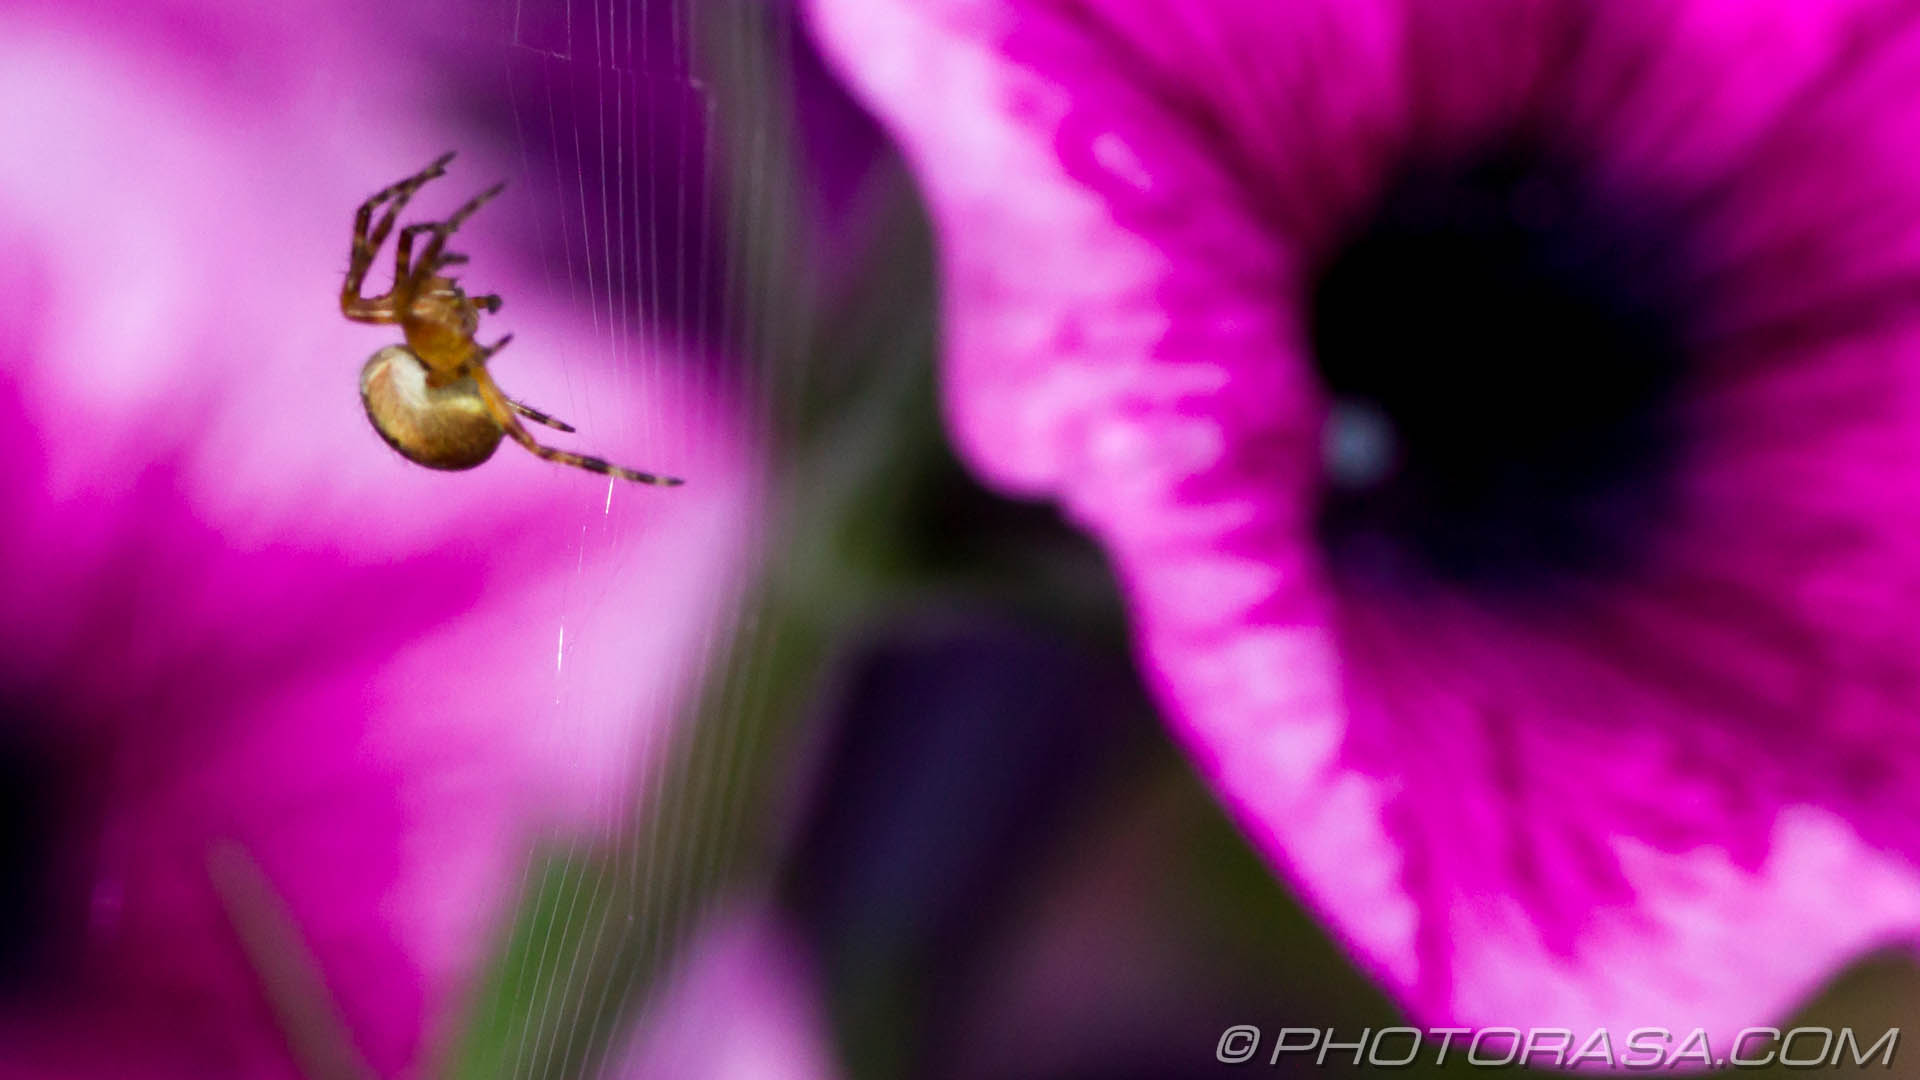 https://photorasa.com/spider-petunias/spider-in-purple-petunias/